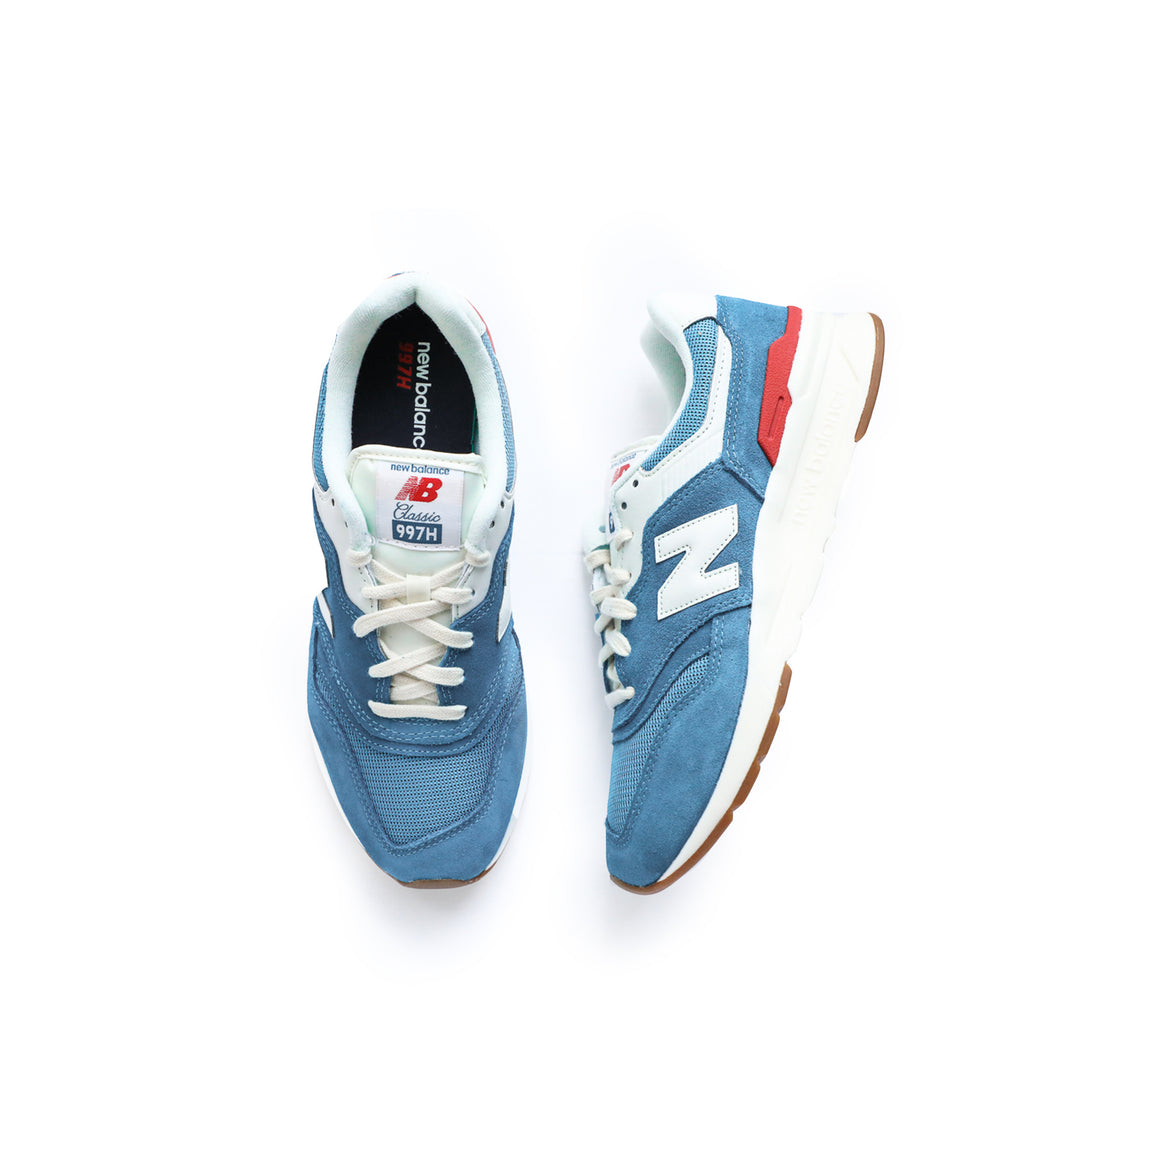 New Balance 997H (Light Rogue Wave/Sail) - New Balance 997H (Light Rogue Wave/Sail) -